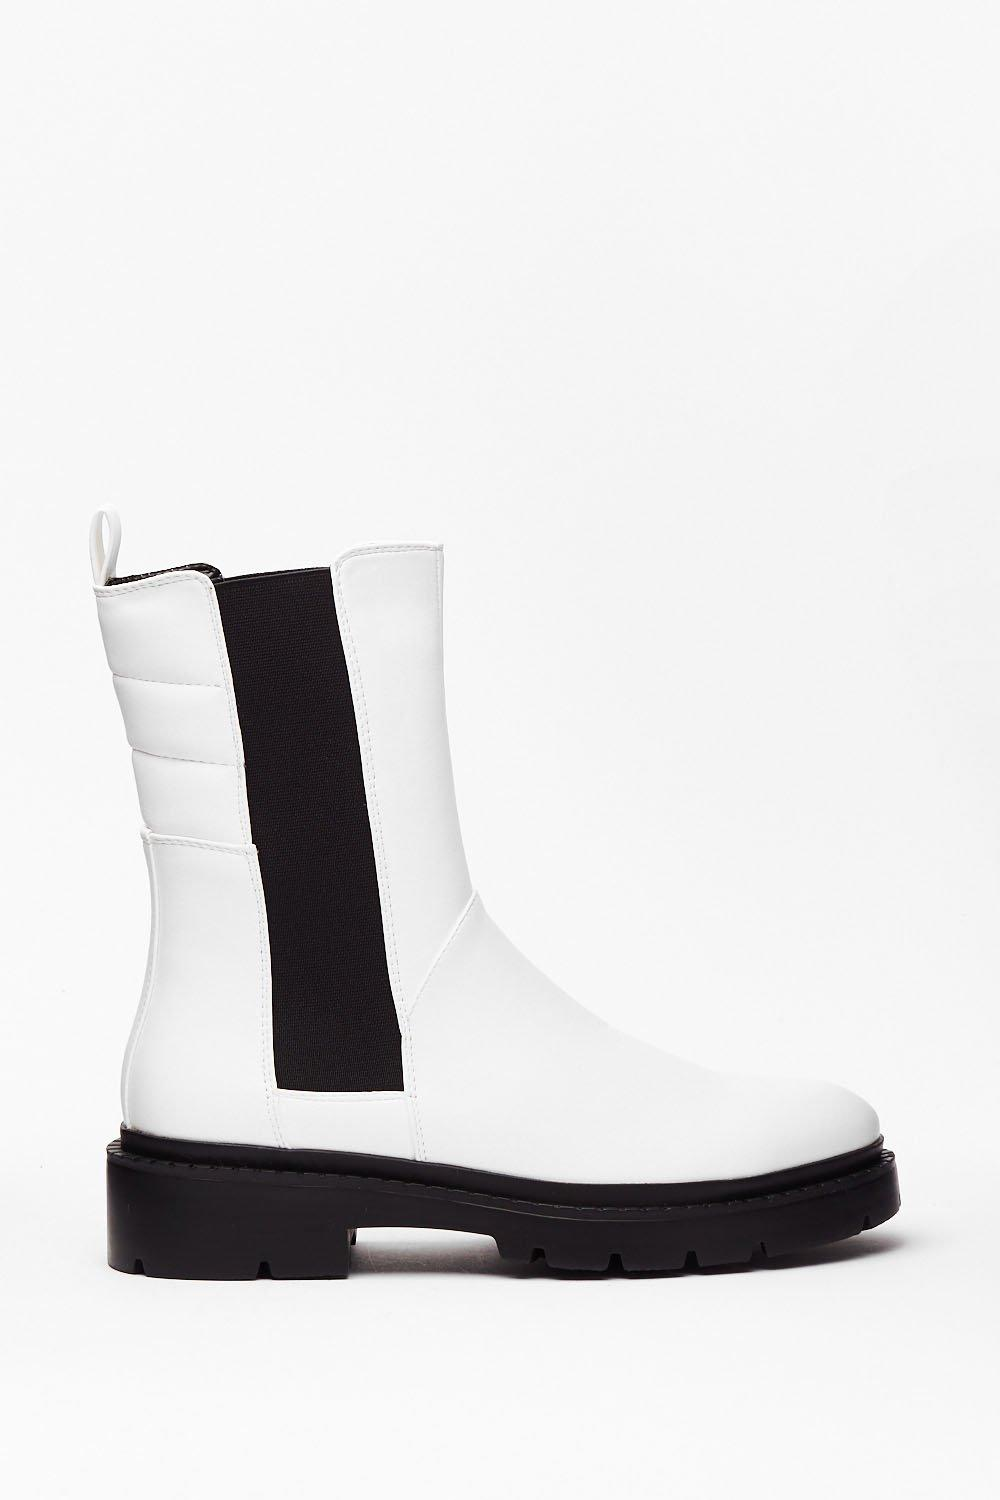 Image of Womens PU Long Gusset Chelsea Boot - White